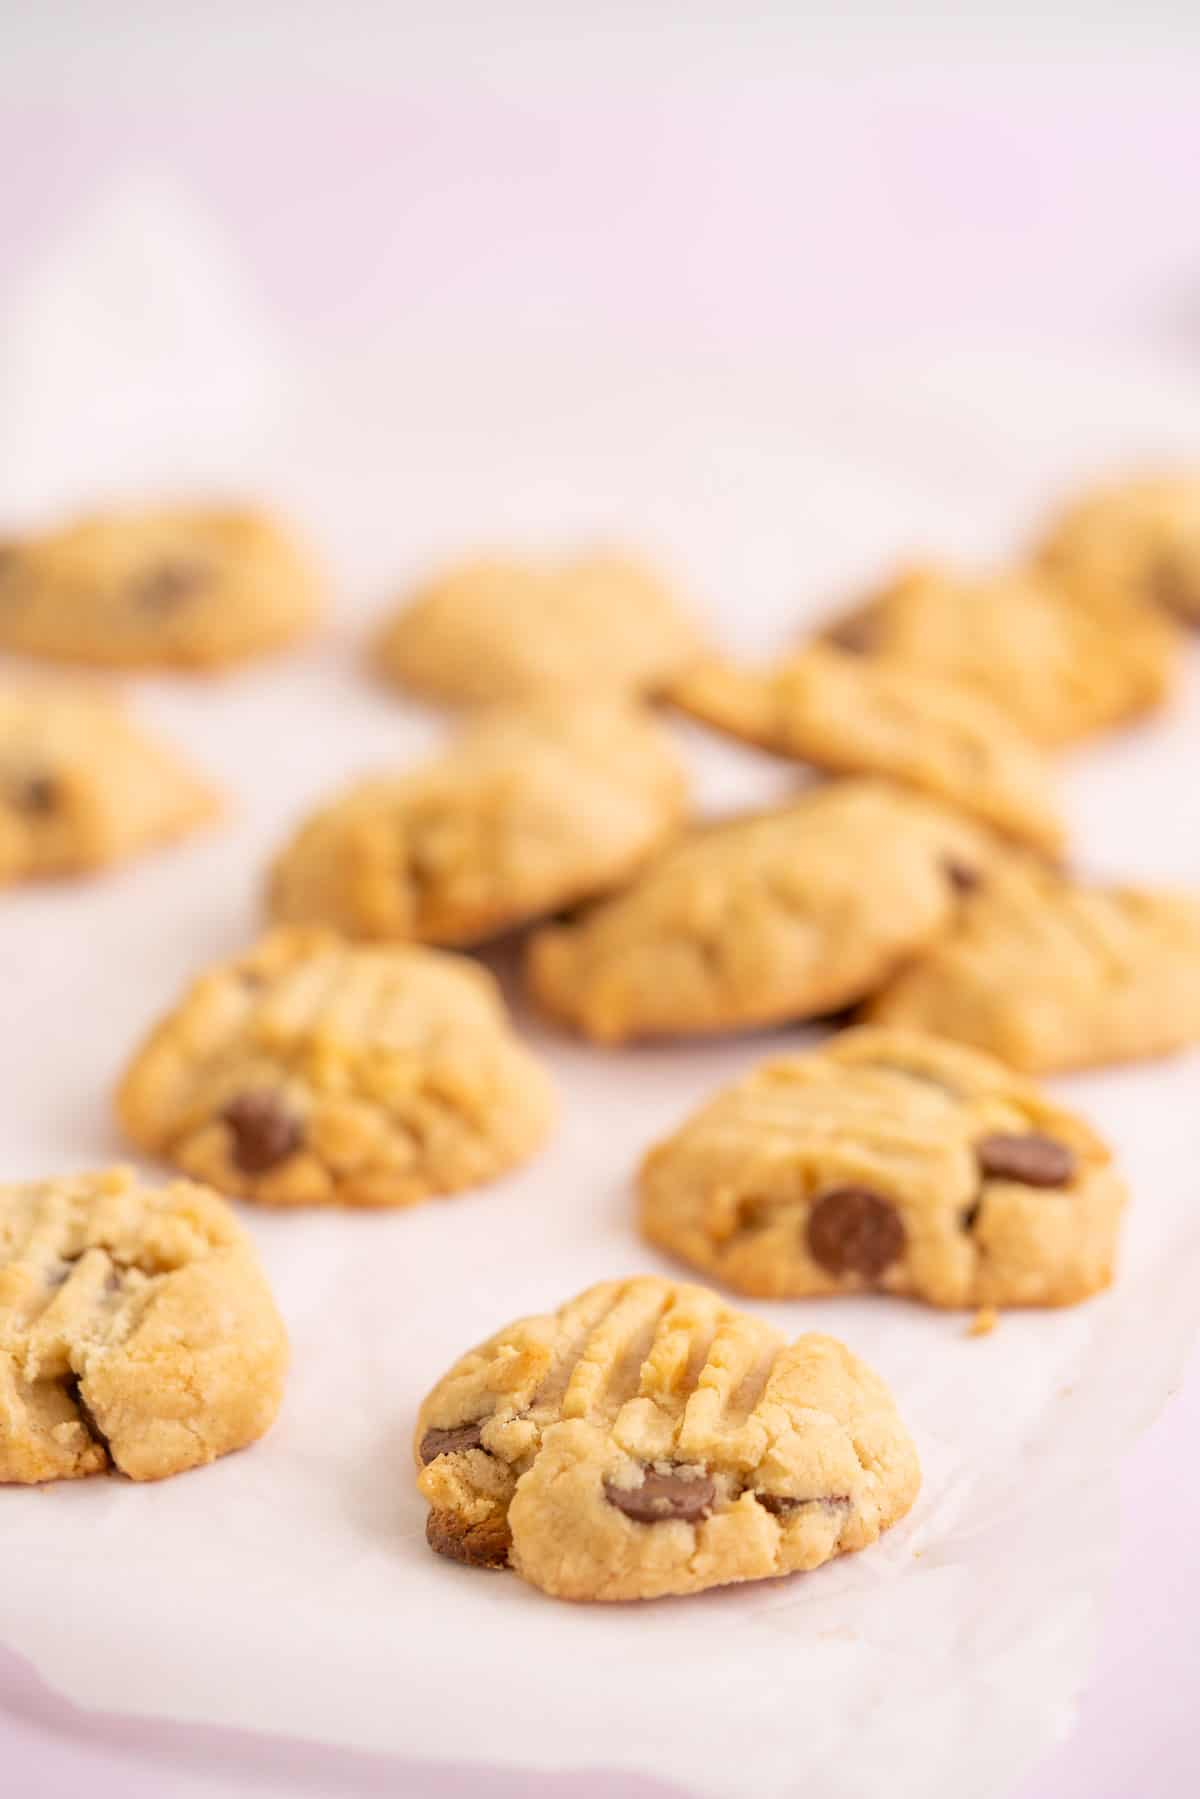 Gluten free vegan cookies lying scattered on a piece of baking paper, with a pink background.